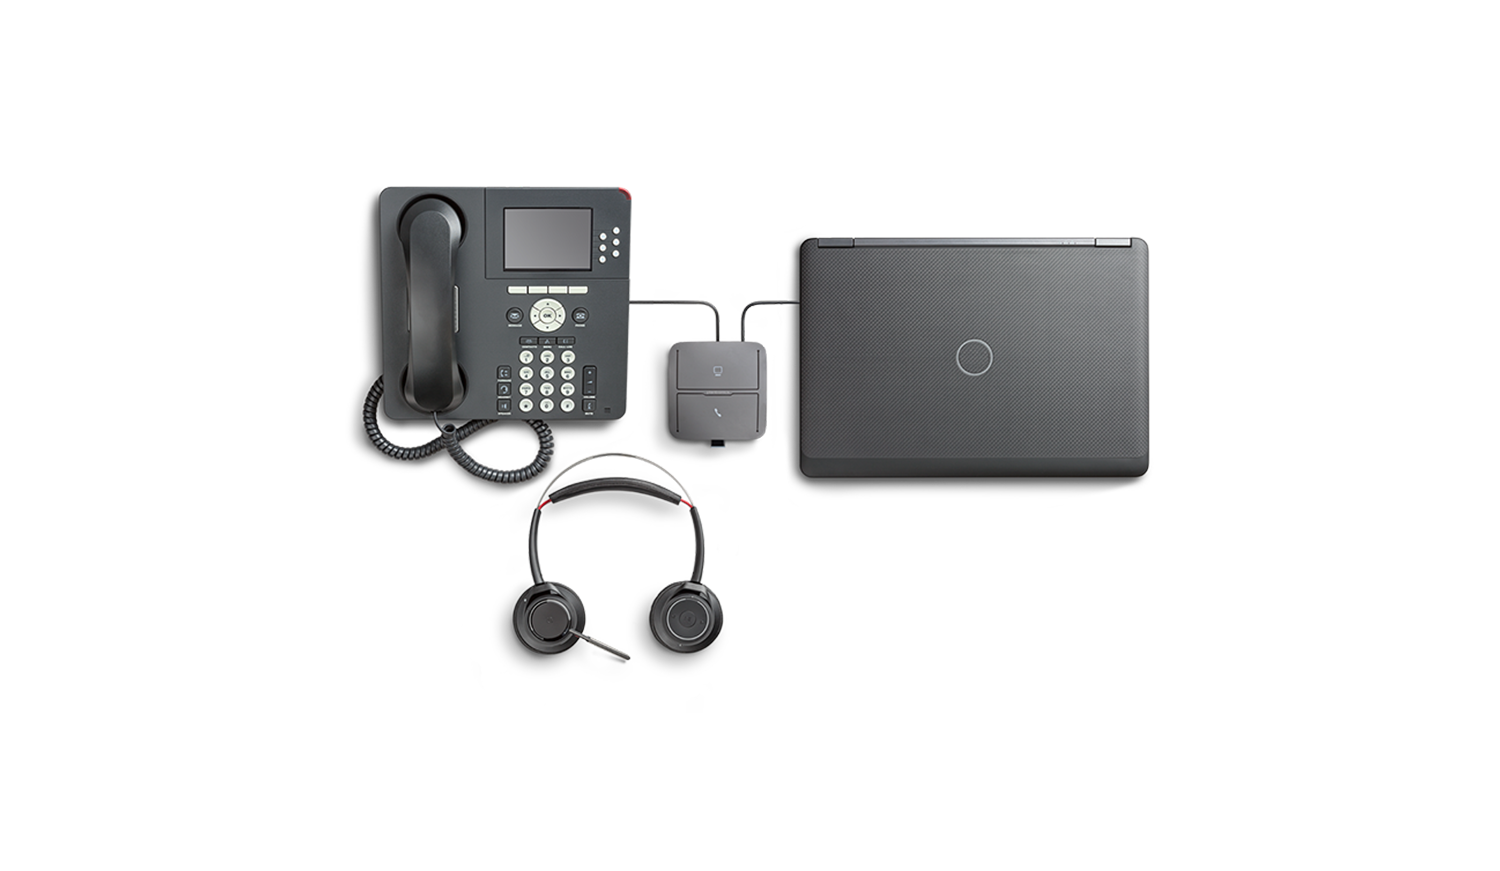 How Do You Connect A Plantronics Usb Headset To A Desk Phone Call One Inc